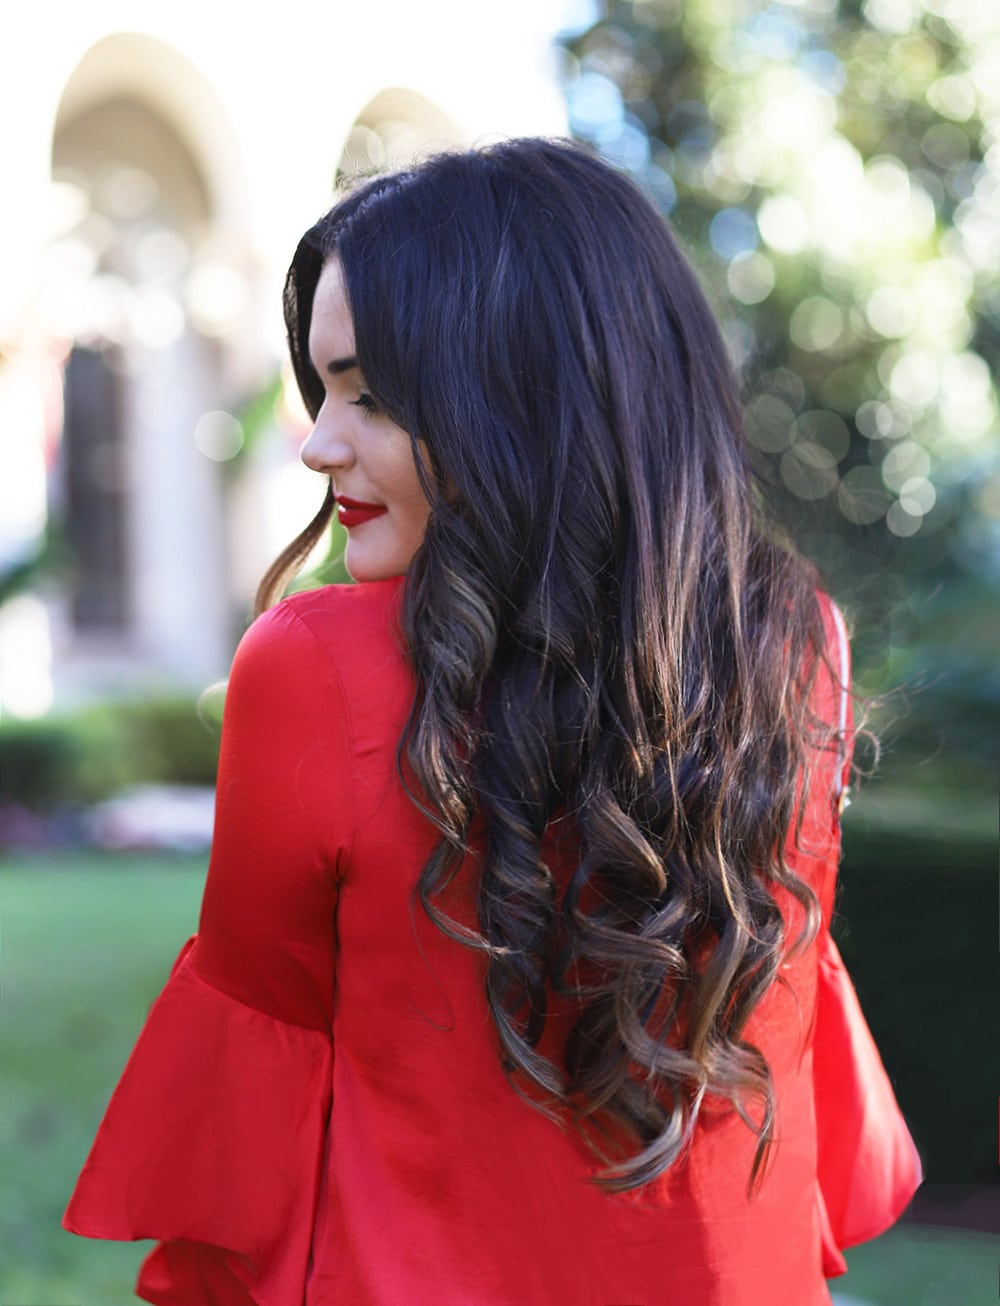 Mash Elle beauty blogger | holiday hair on a budget tutorial | hair tutorial | curls | long hair | christmas outfit | long hairstyle | hair cuttery